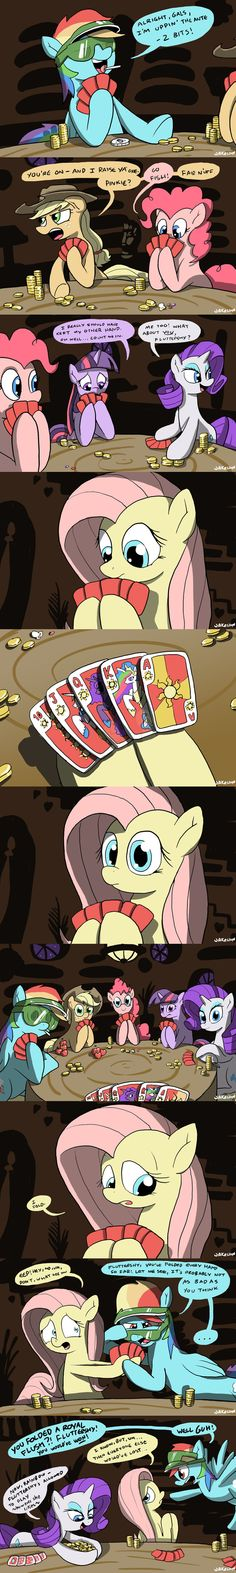 Oh Fluttershy. And there you have Rarity just taking the money. XD. Lol